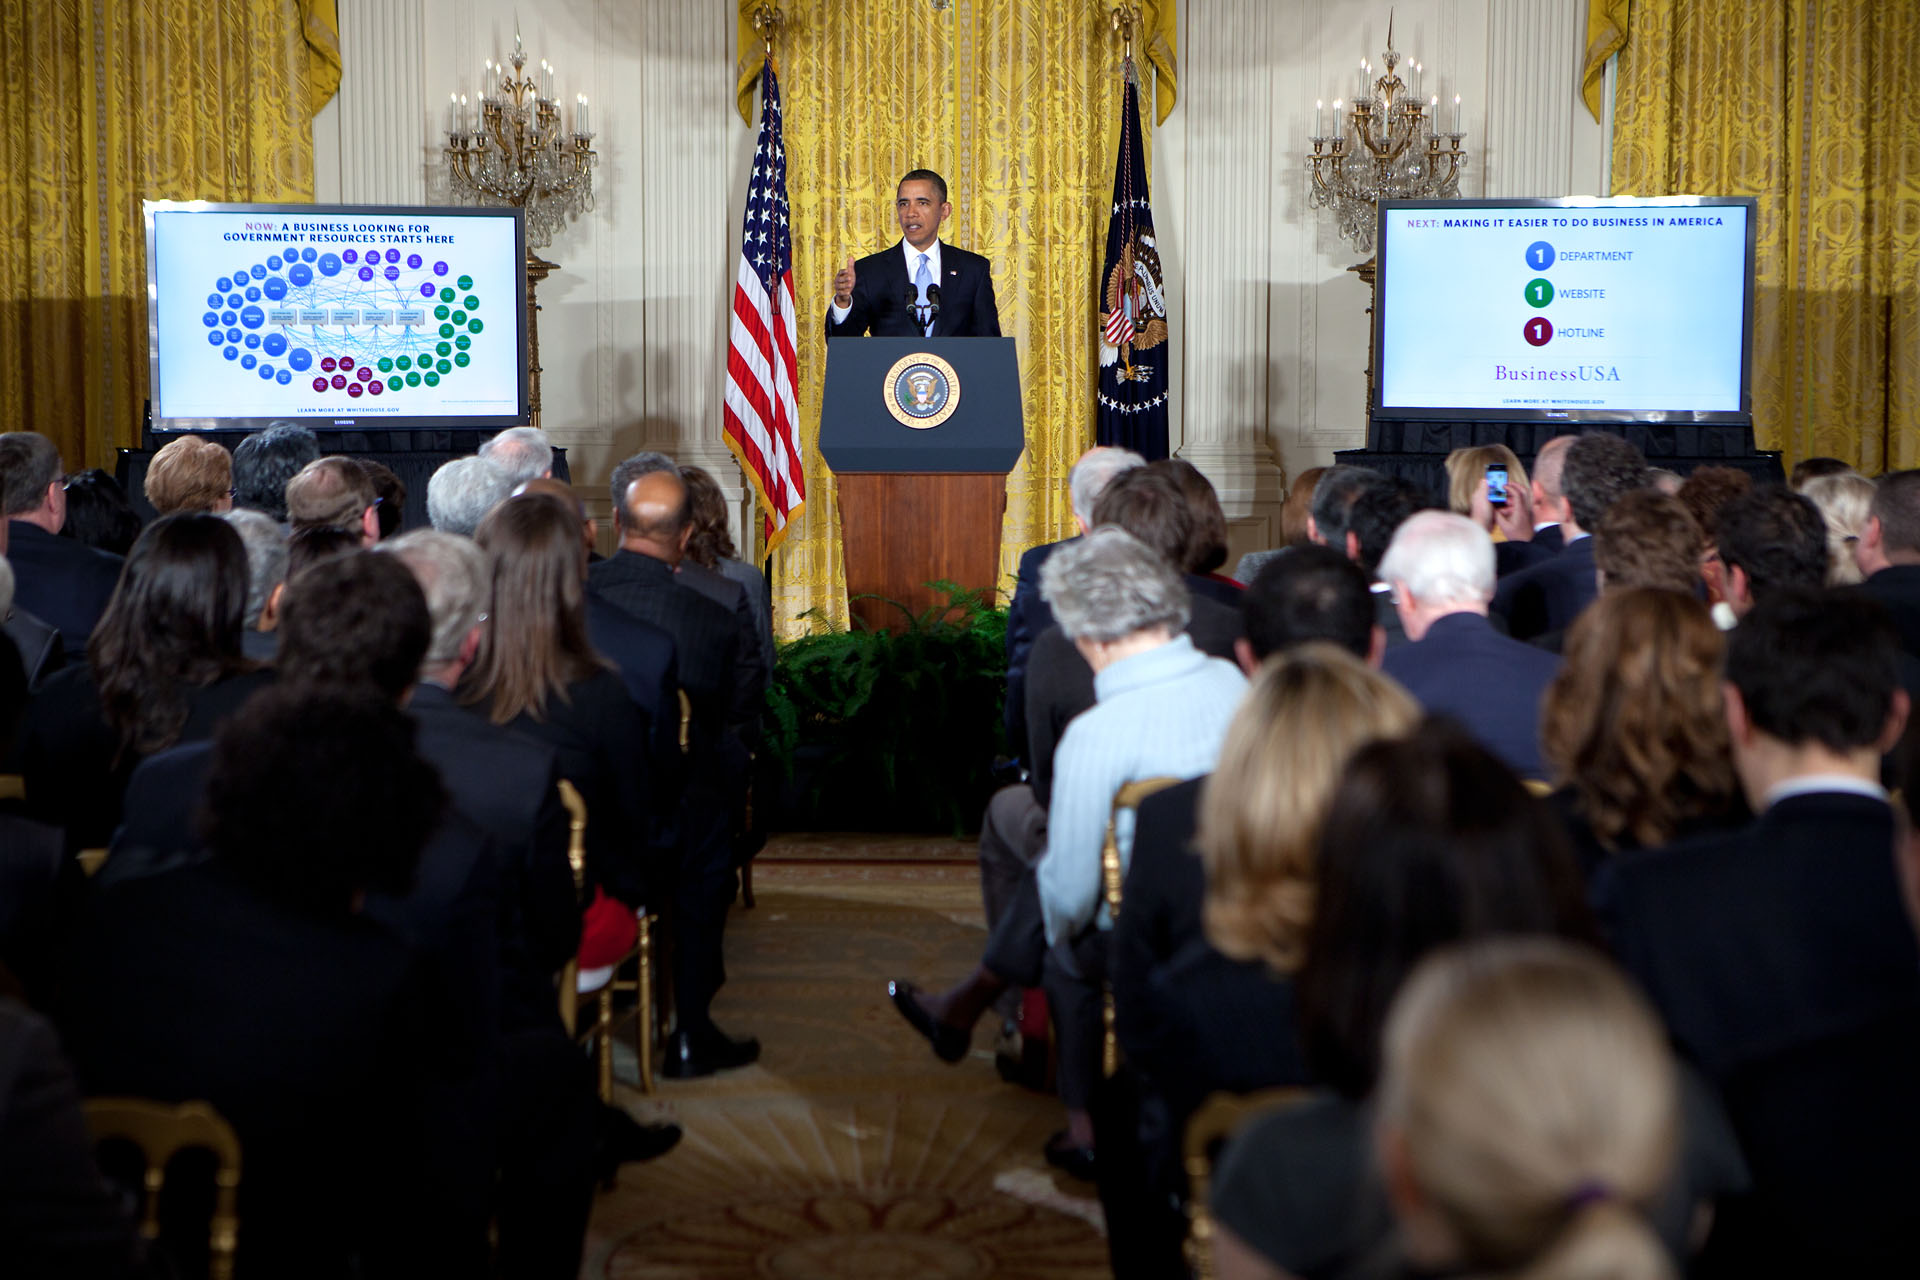 President Obama delivers remarks on government reorganization (20120113)